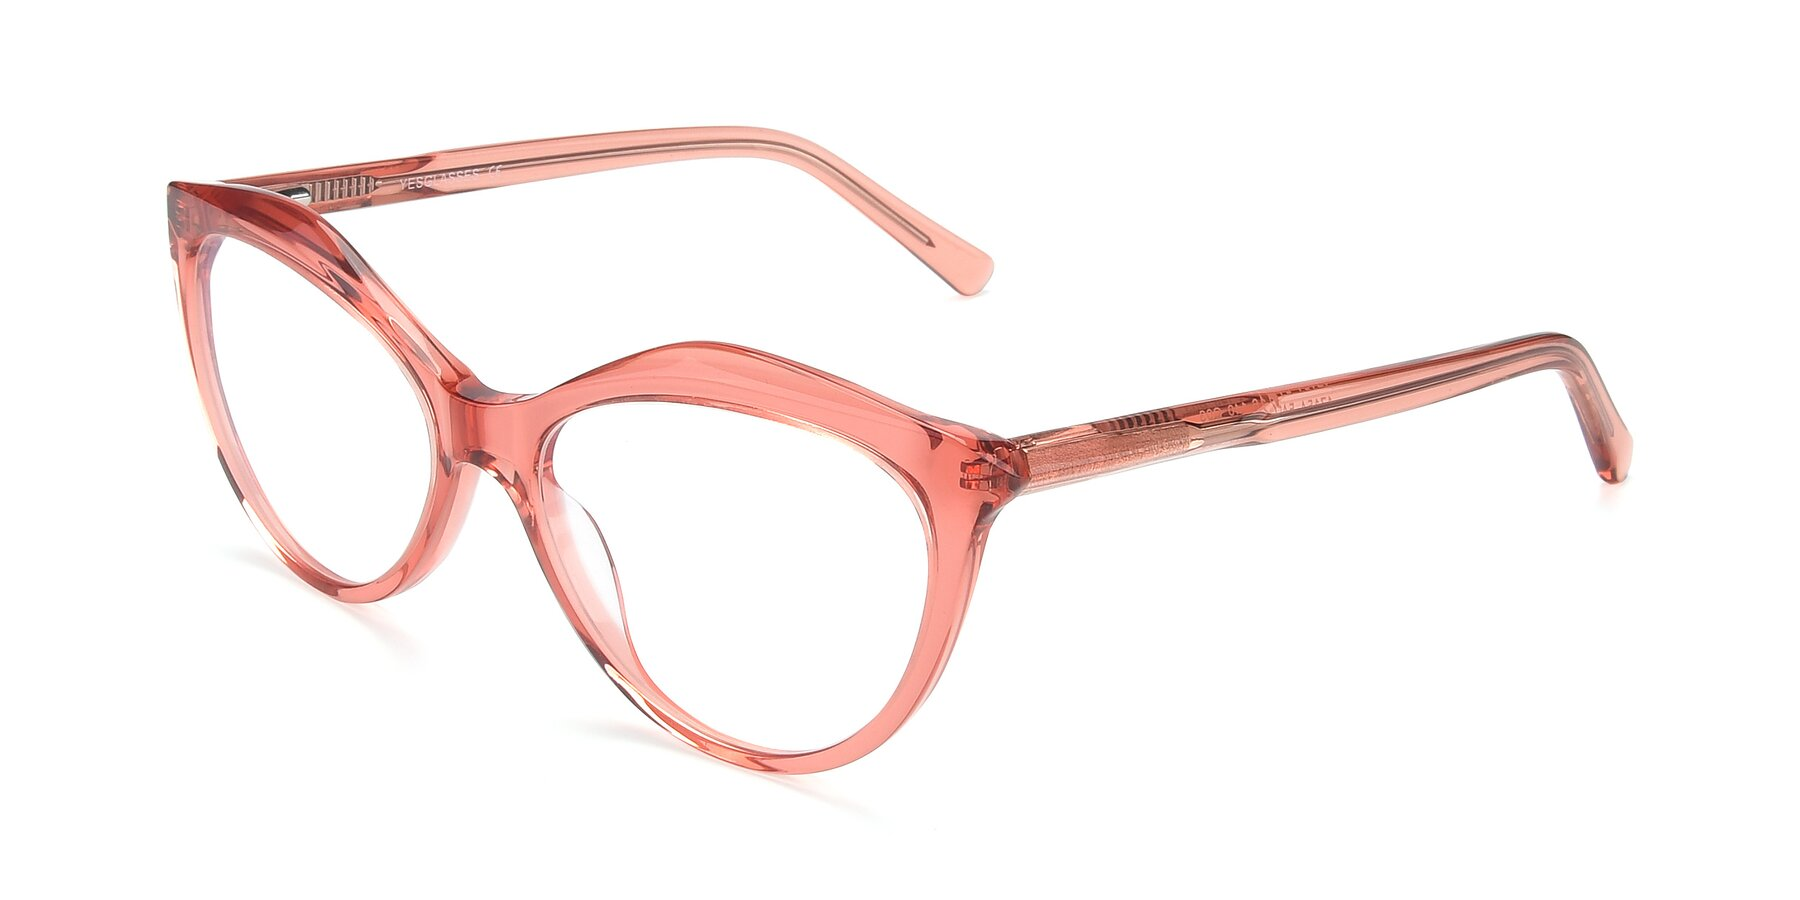 Angle of 17154 in Transparent Red with Clear Eyeglass Lenses